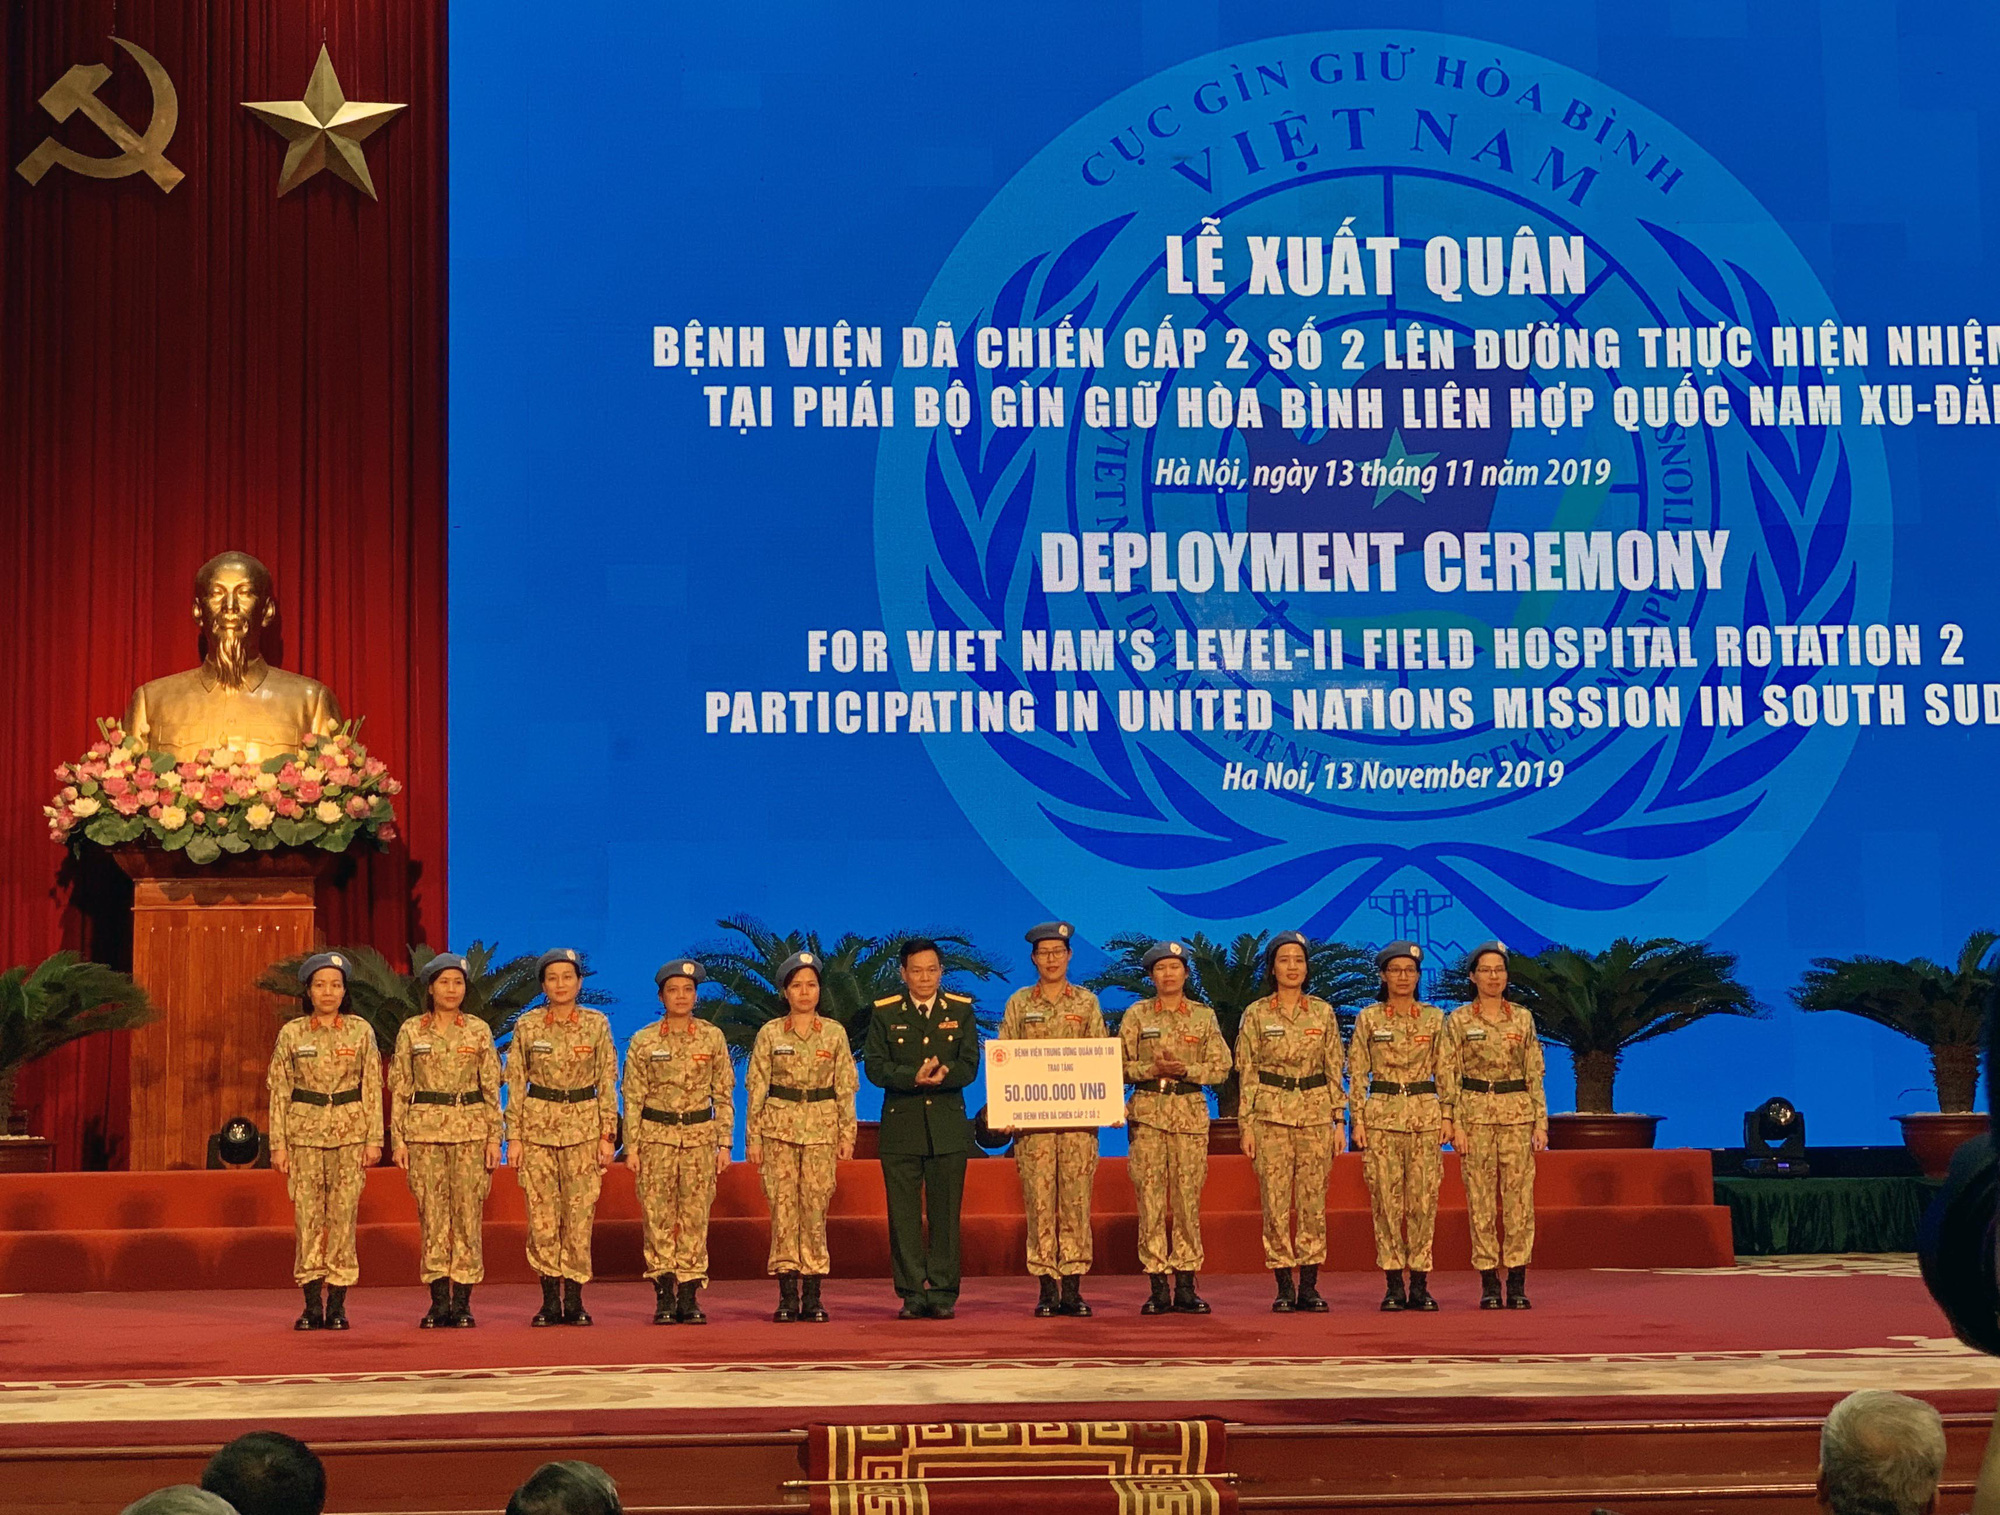 Staff members of Vietnam's level-two field hospital rotation 2 receive a monetary gift from a Ministry of National Defense agency during a deployment ceremony in Hanoi, November 13, 2019. Photo: Duc Binh / Tuoi Tre